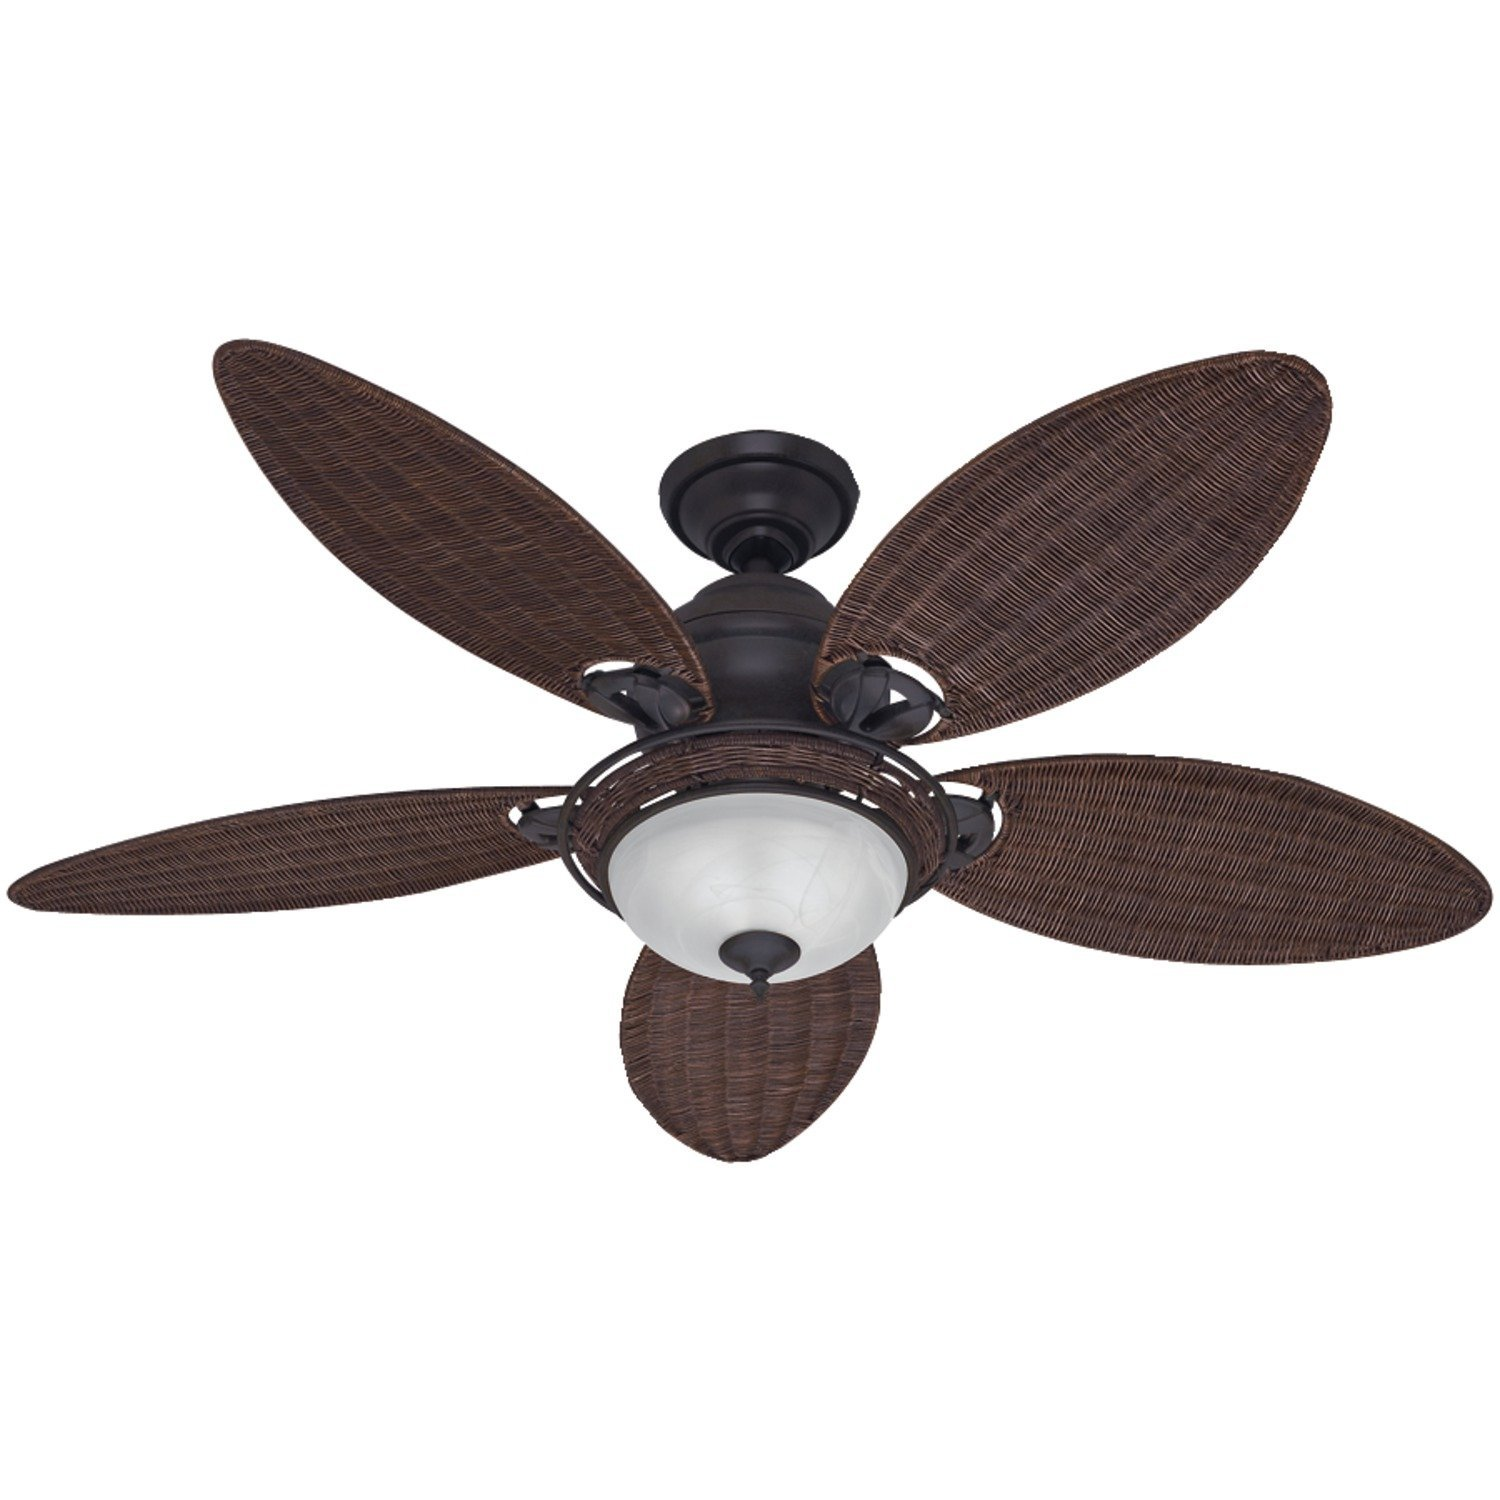 Hunter Fan Company 54095 Caribbean Breeze 54-Inch Ceiling Fan with Five Antique Dark Wicker Blades and Light Kit, Weathered Bronze